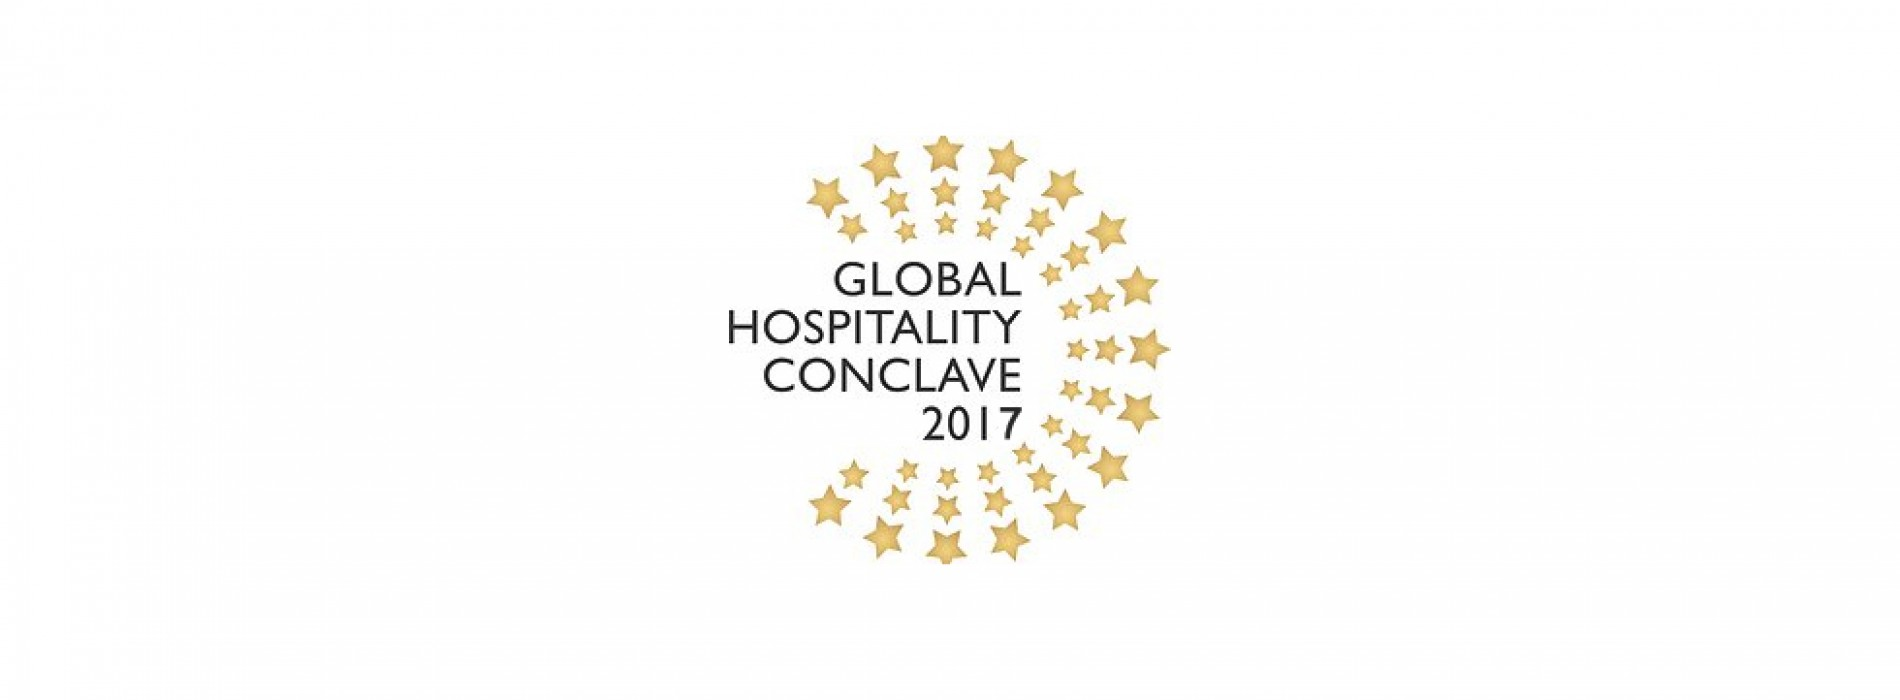 Global Hospitality Conclave 2017 to be held on 7 January